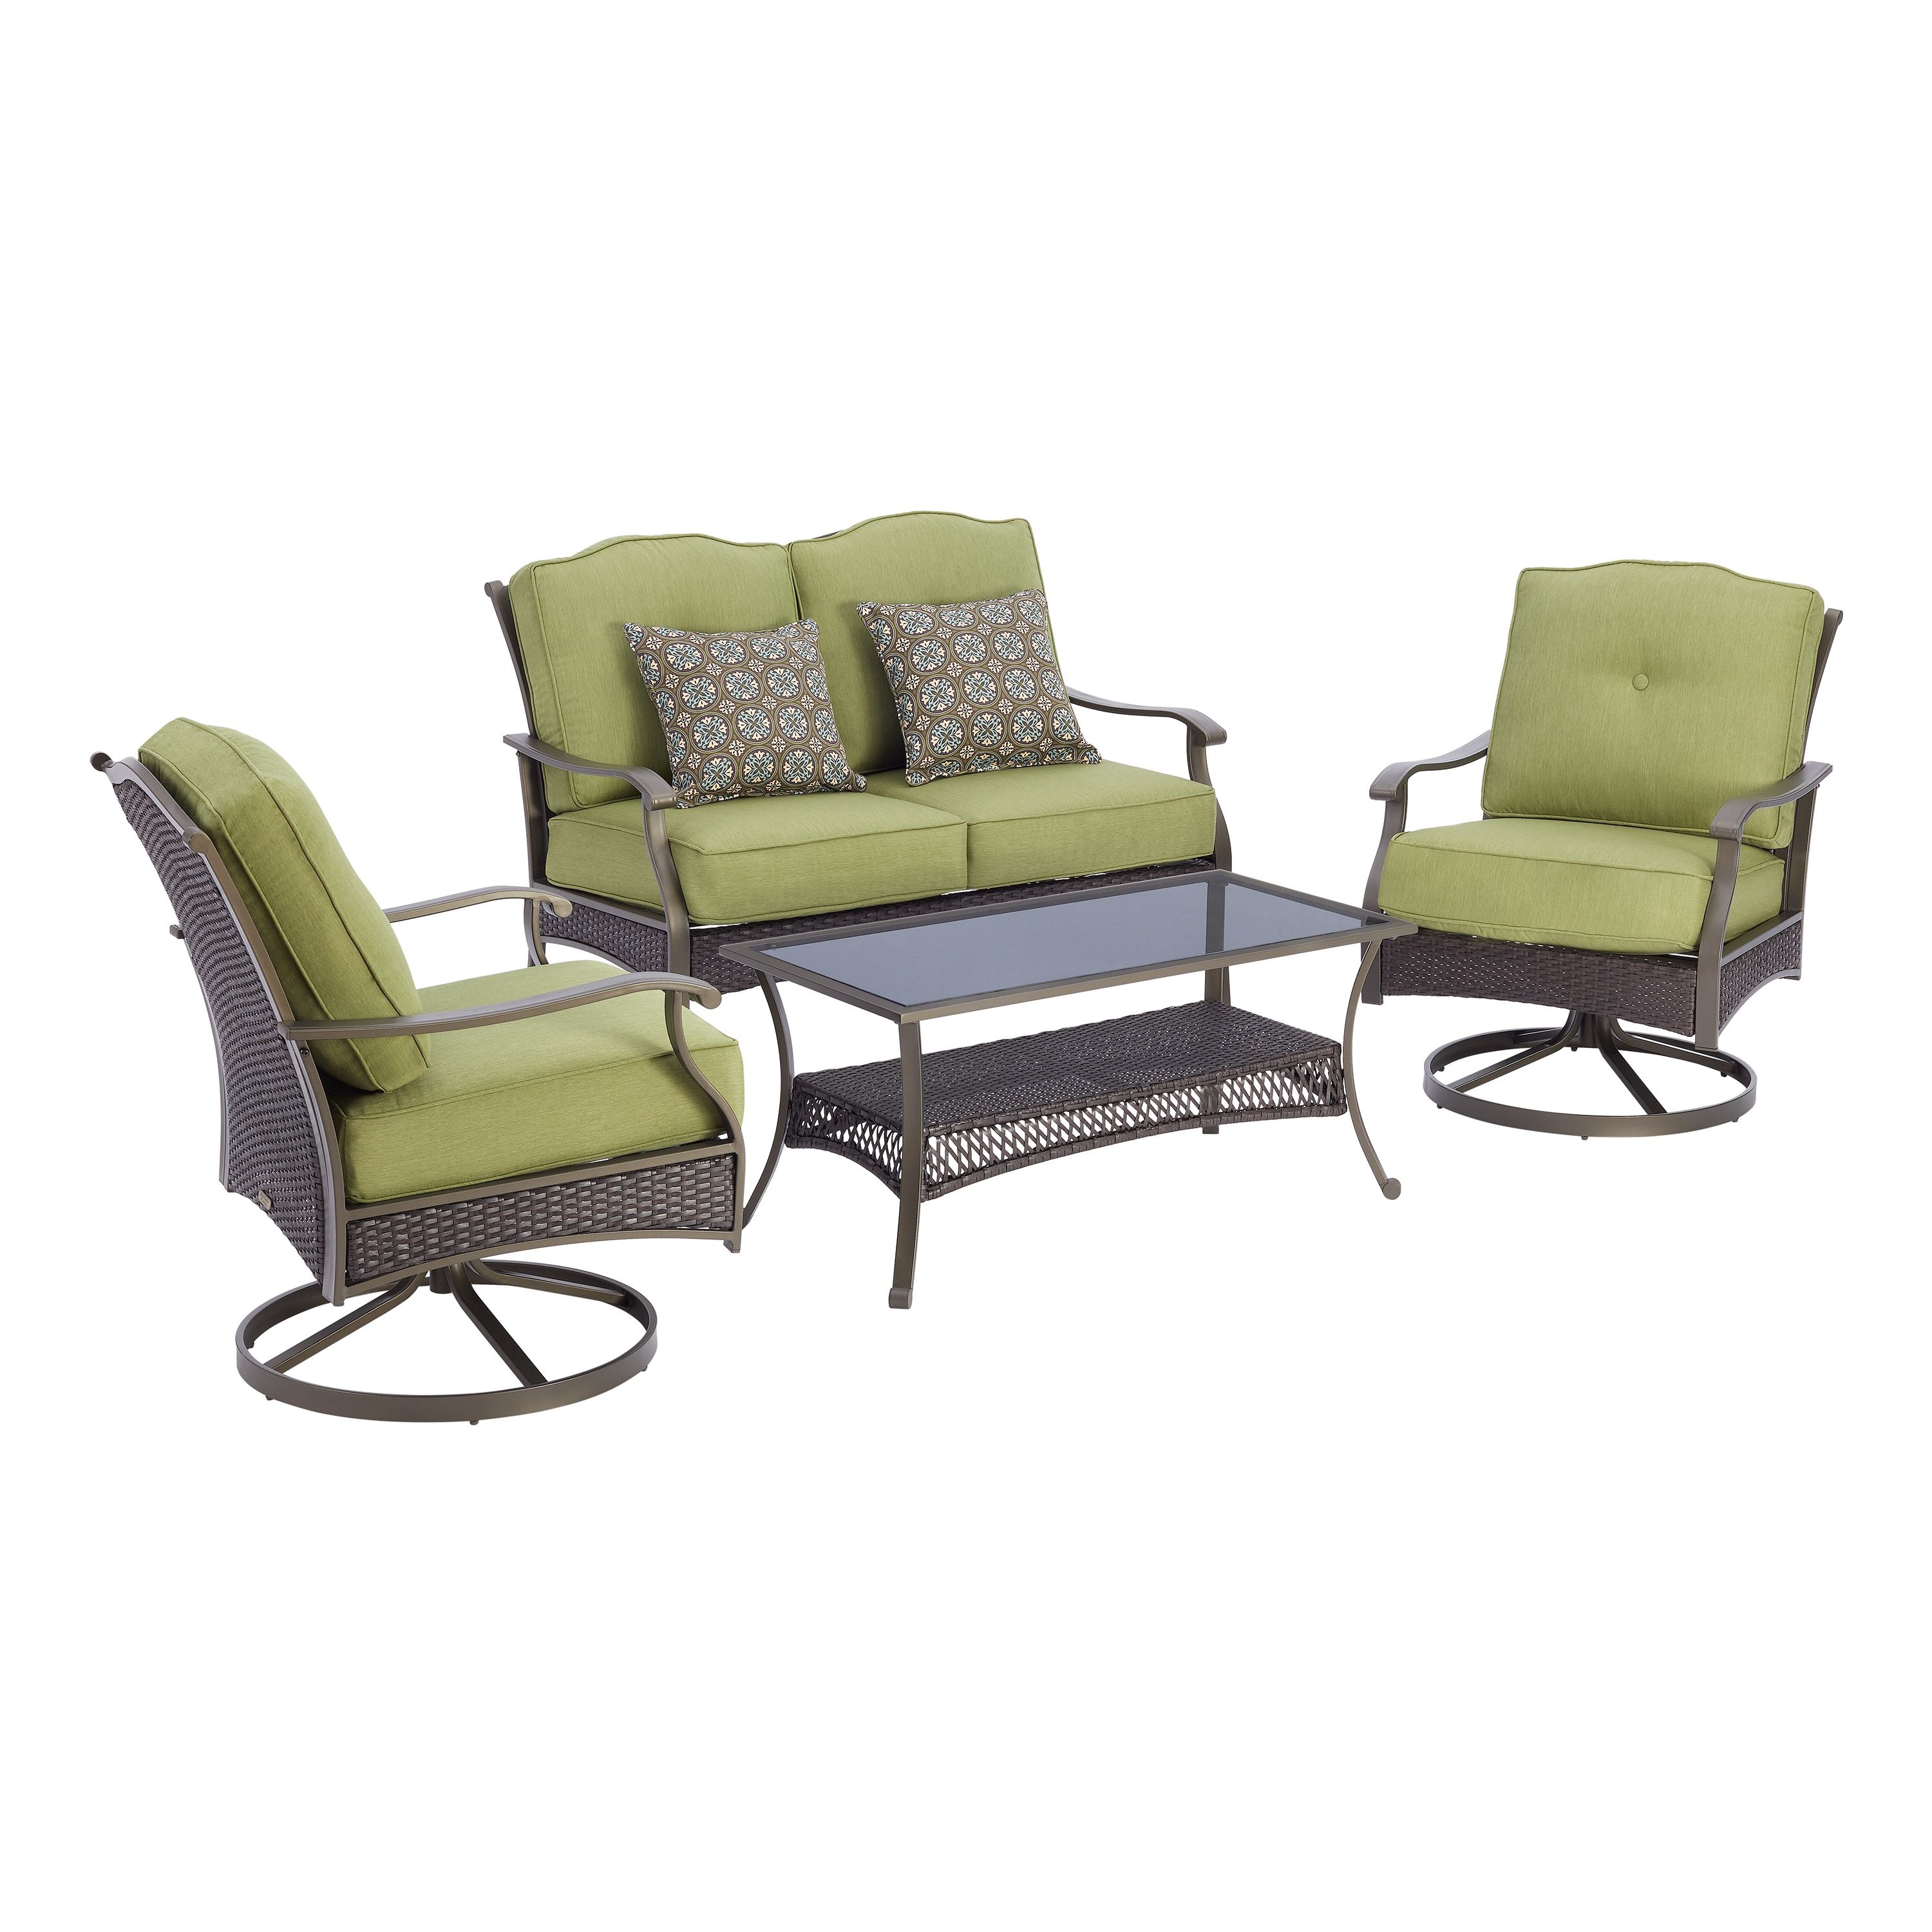 17e598cc65ed3d2b42ee98fb0d163712 - Better Homes And Gardens Providence Outdoor Daybed